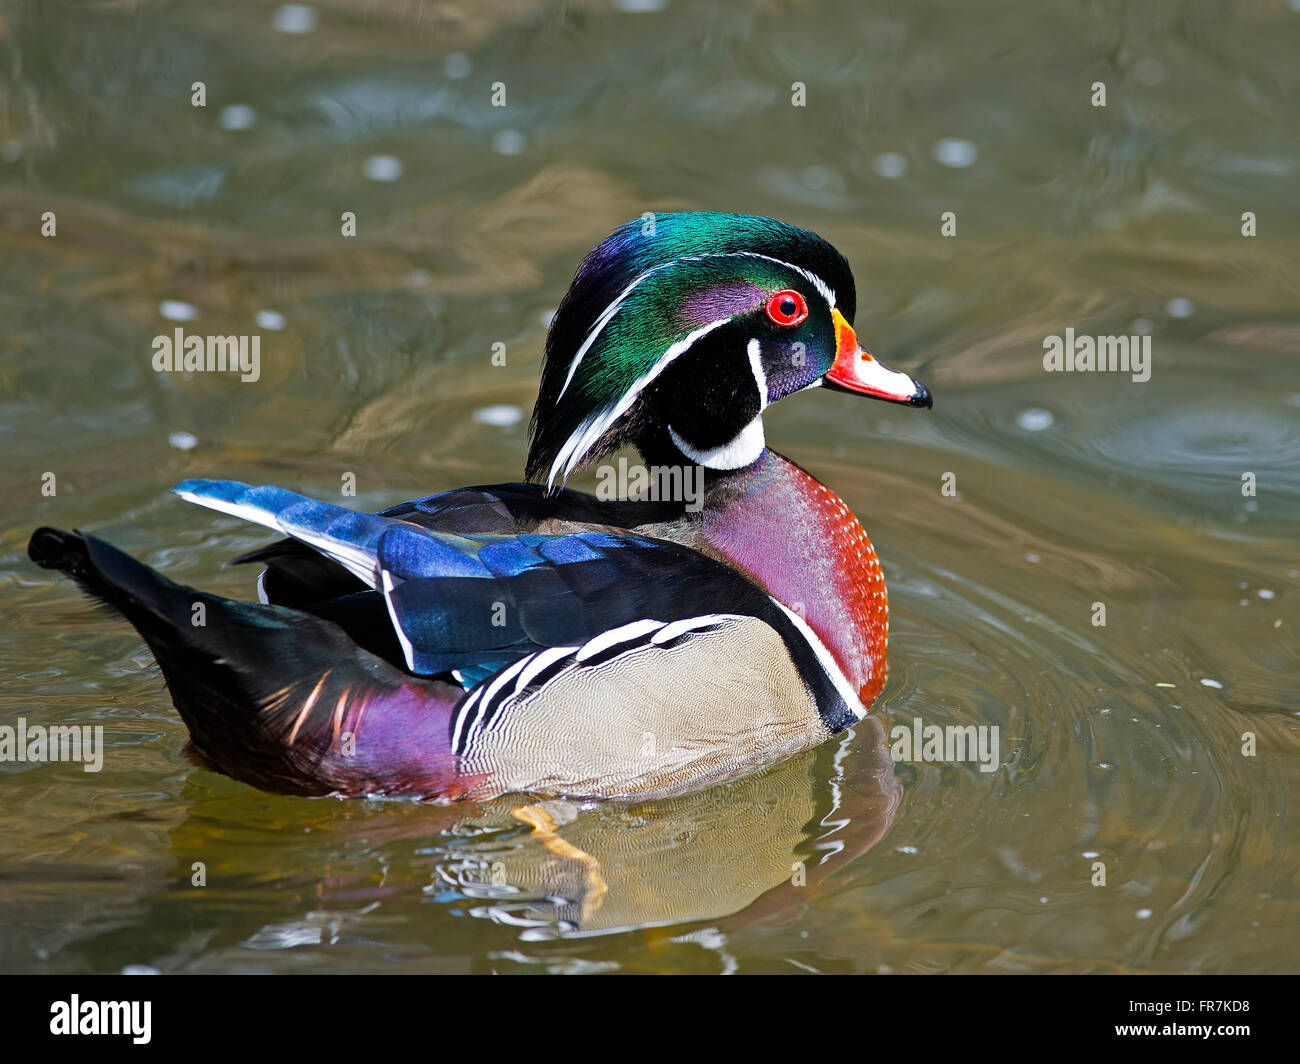 Male Wood Duck - Stock Image